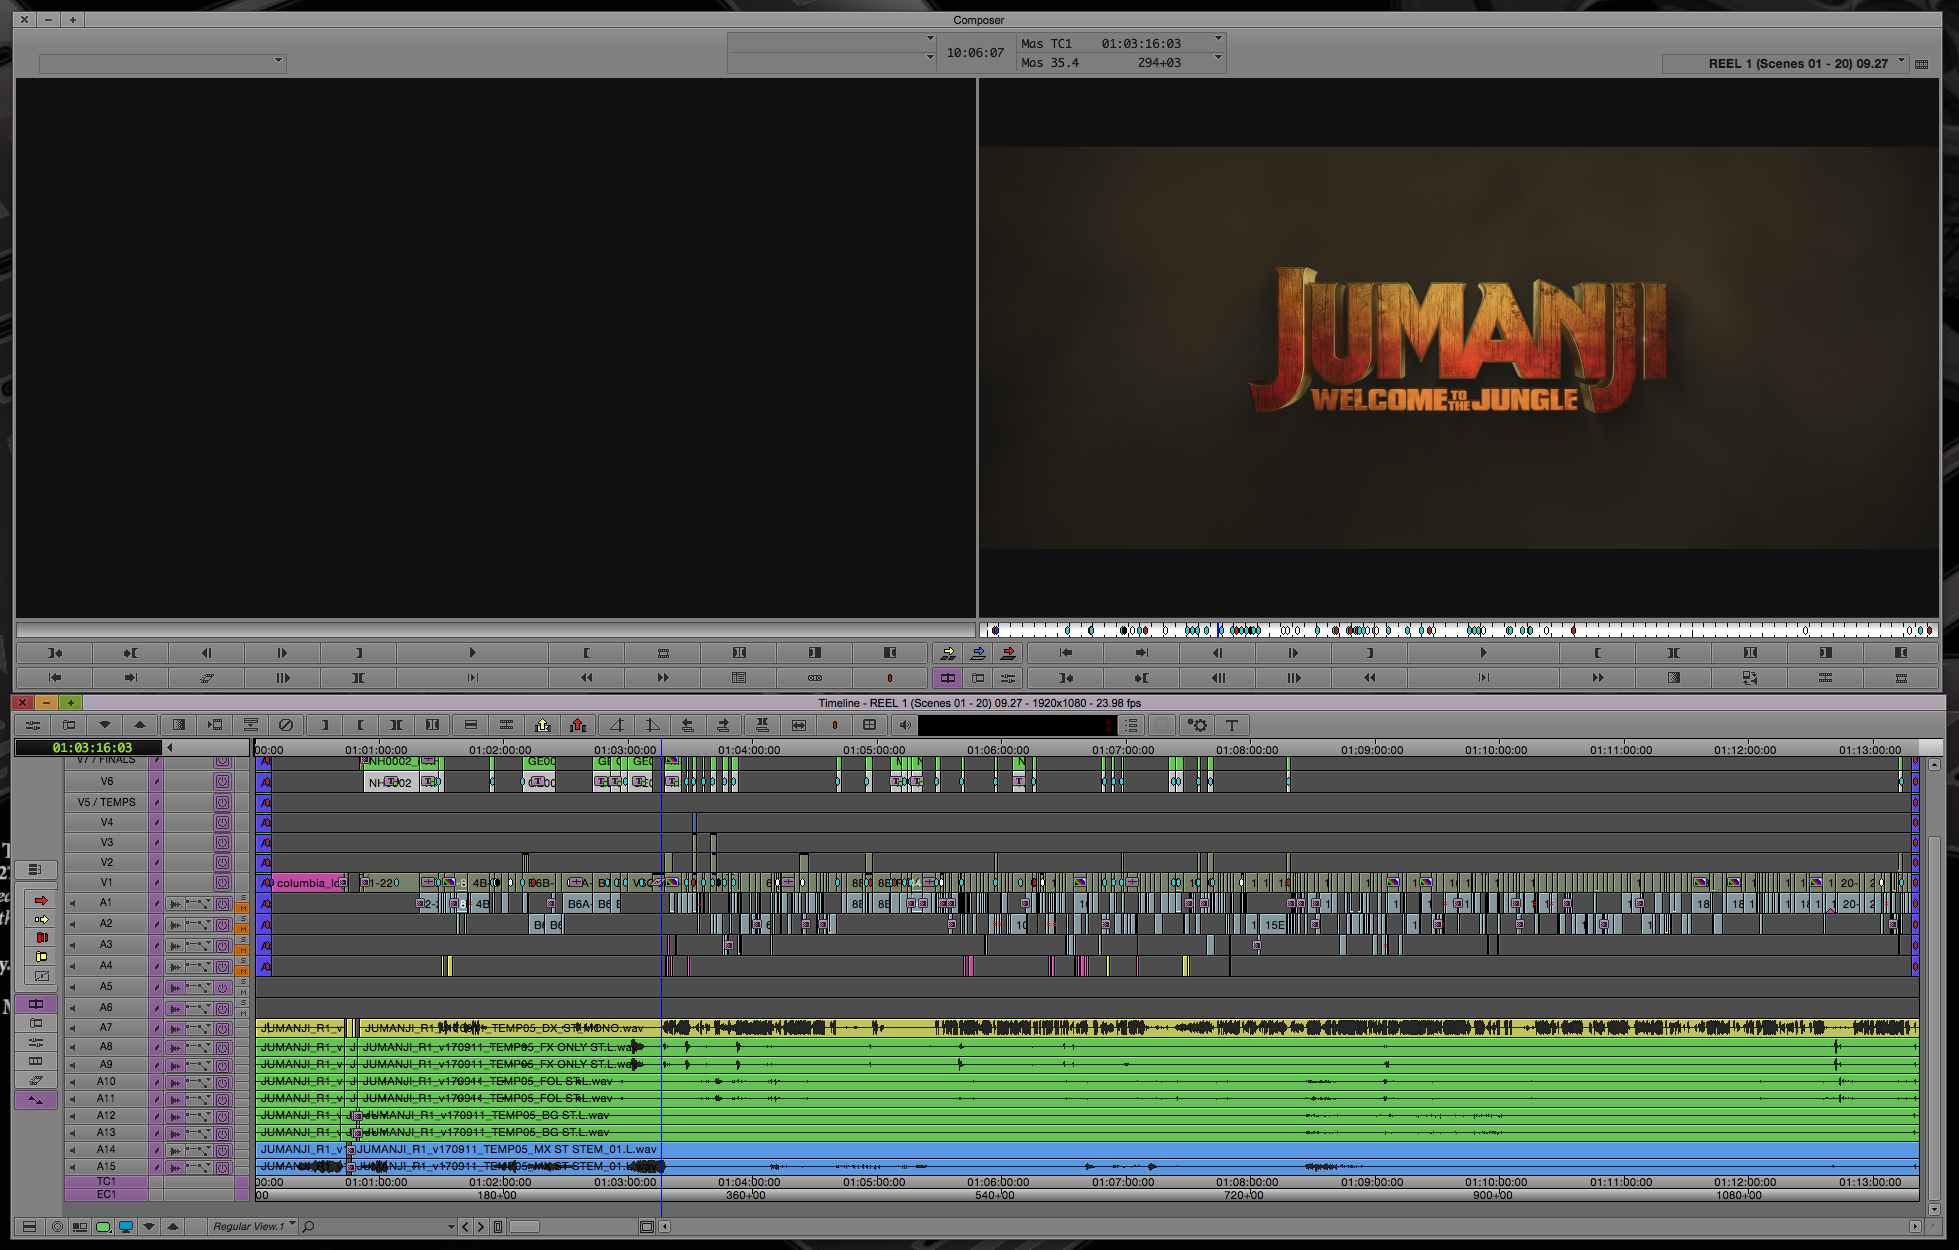 ART OF THE CUT on editing JUMANJI: Welcome to the Jungle 12